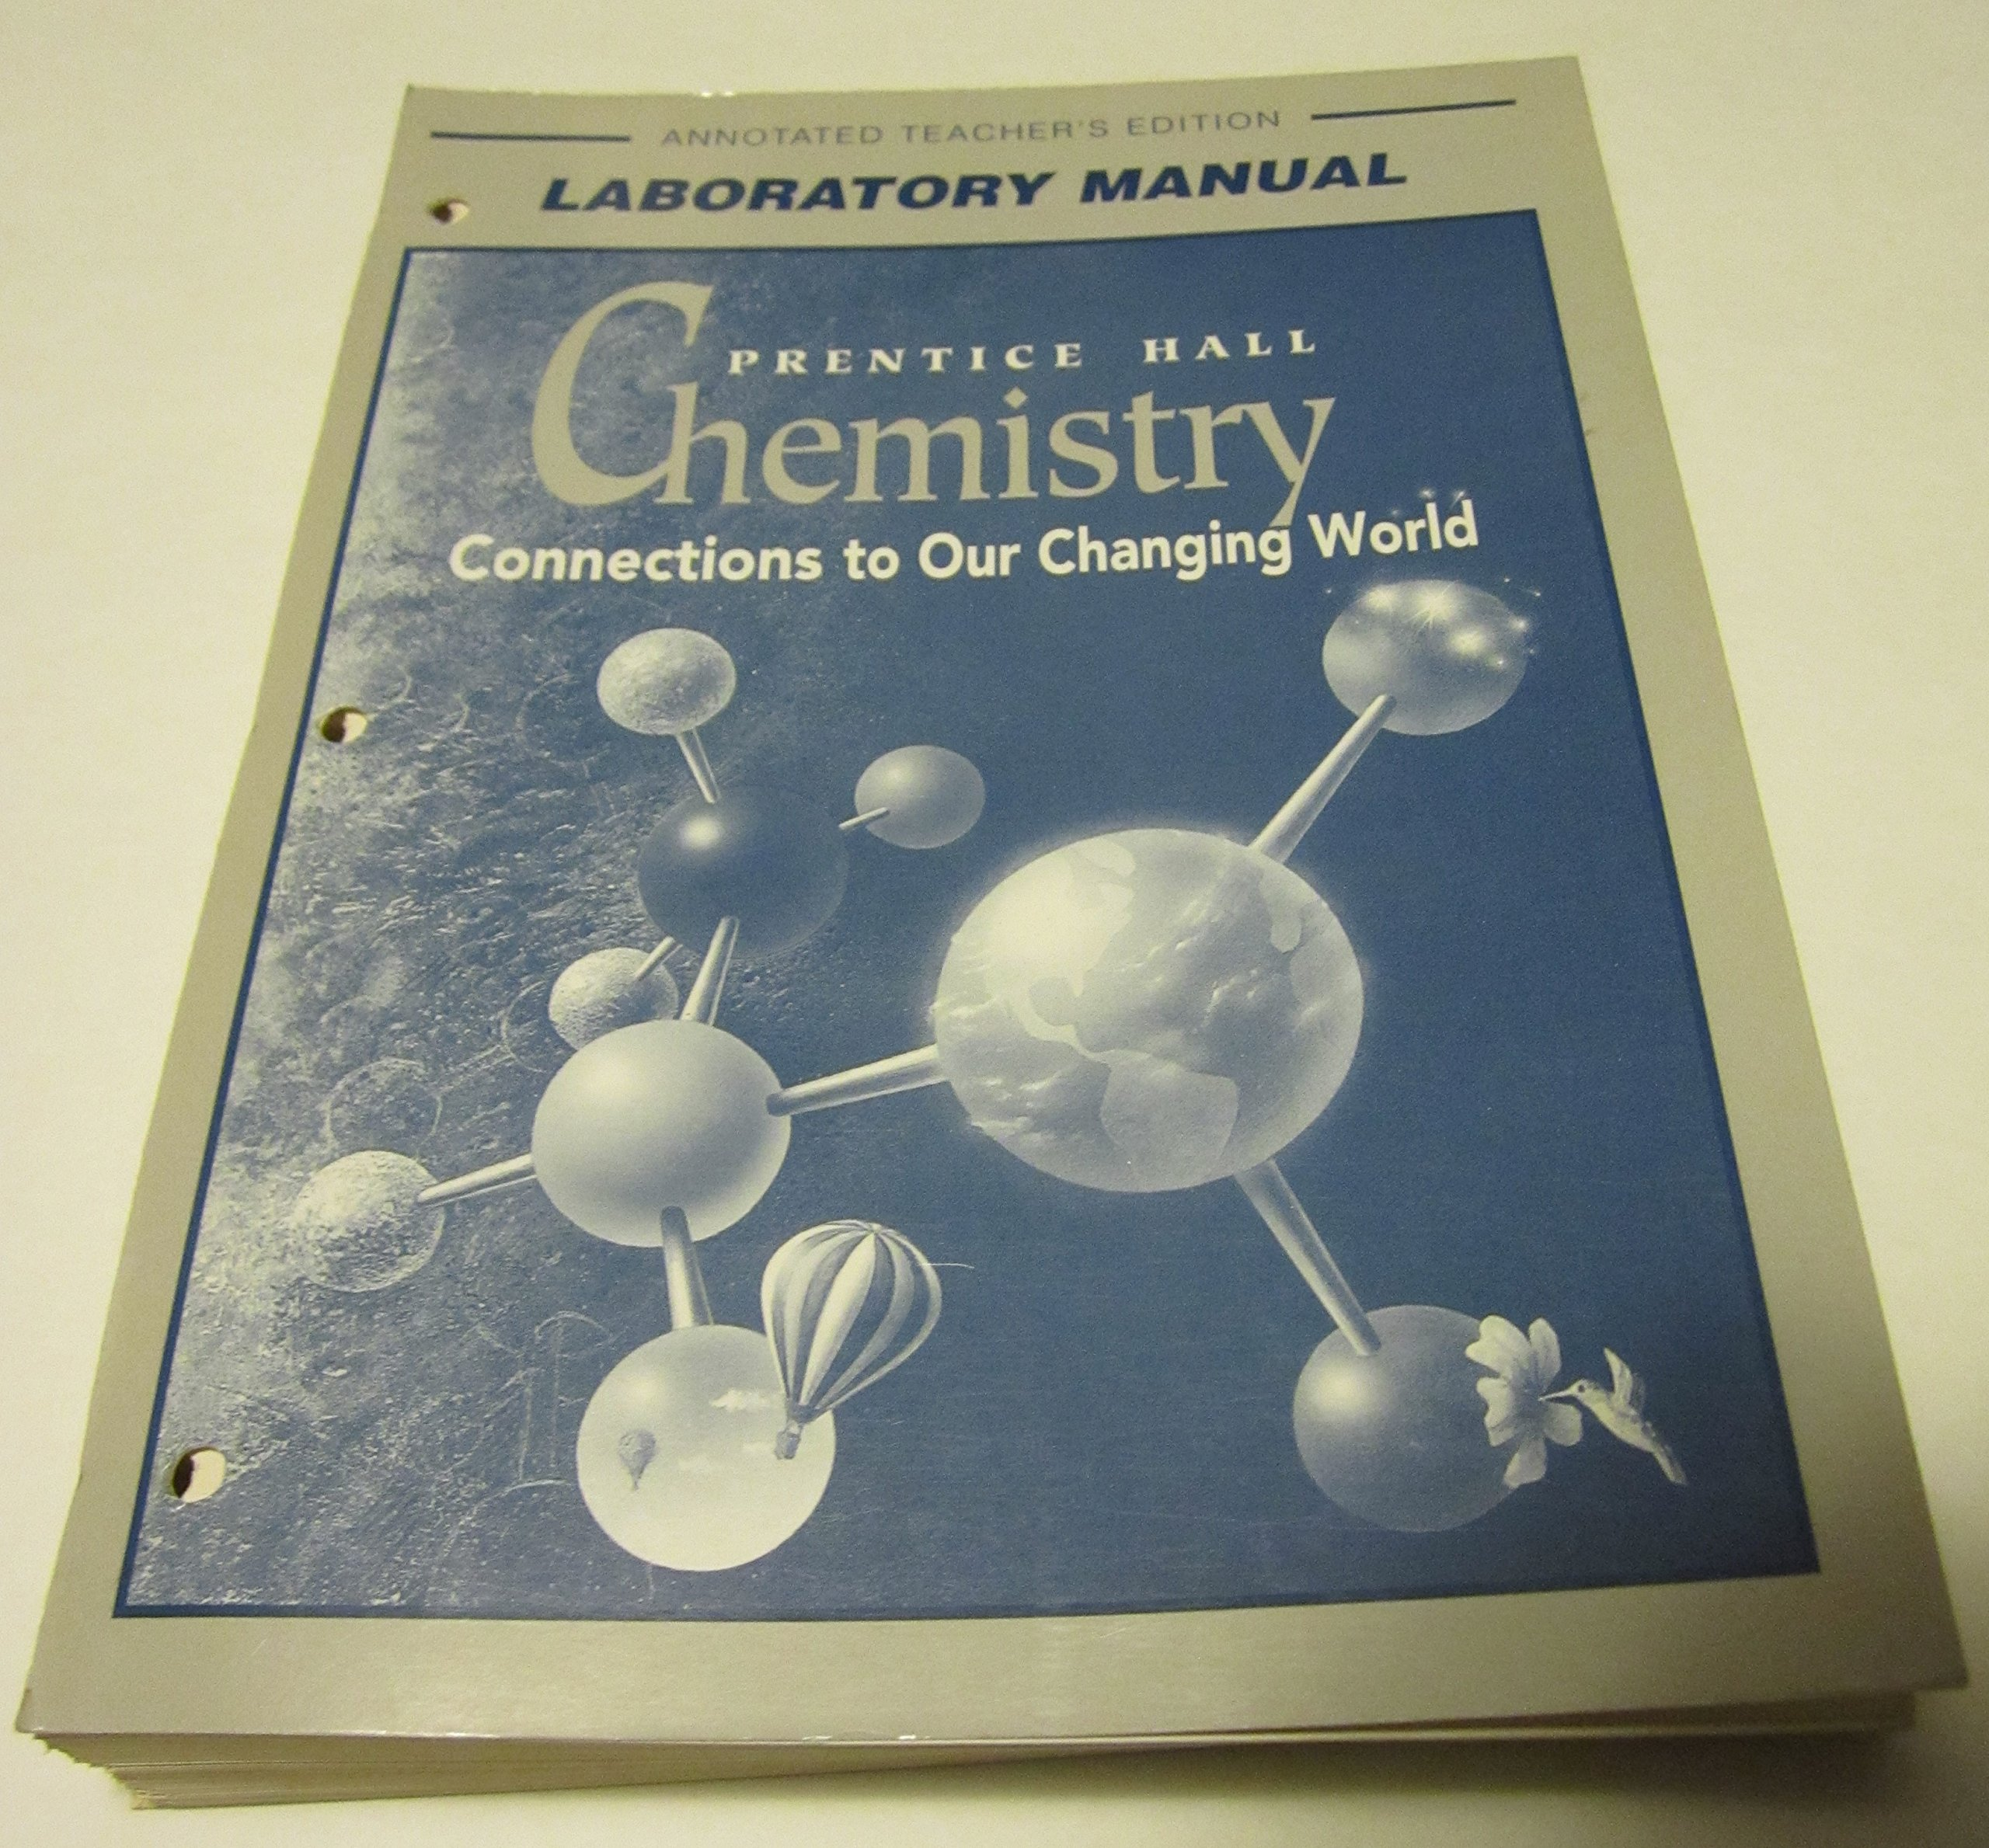 Amazon.com: Chemistry: Connections to Our Changing World Laboratory Manual (Annotated  Teacher's Edition) (9780134362236): Books